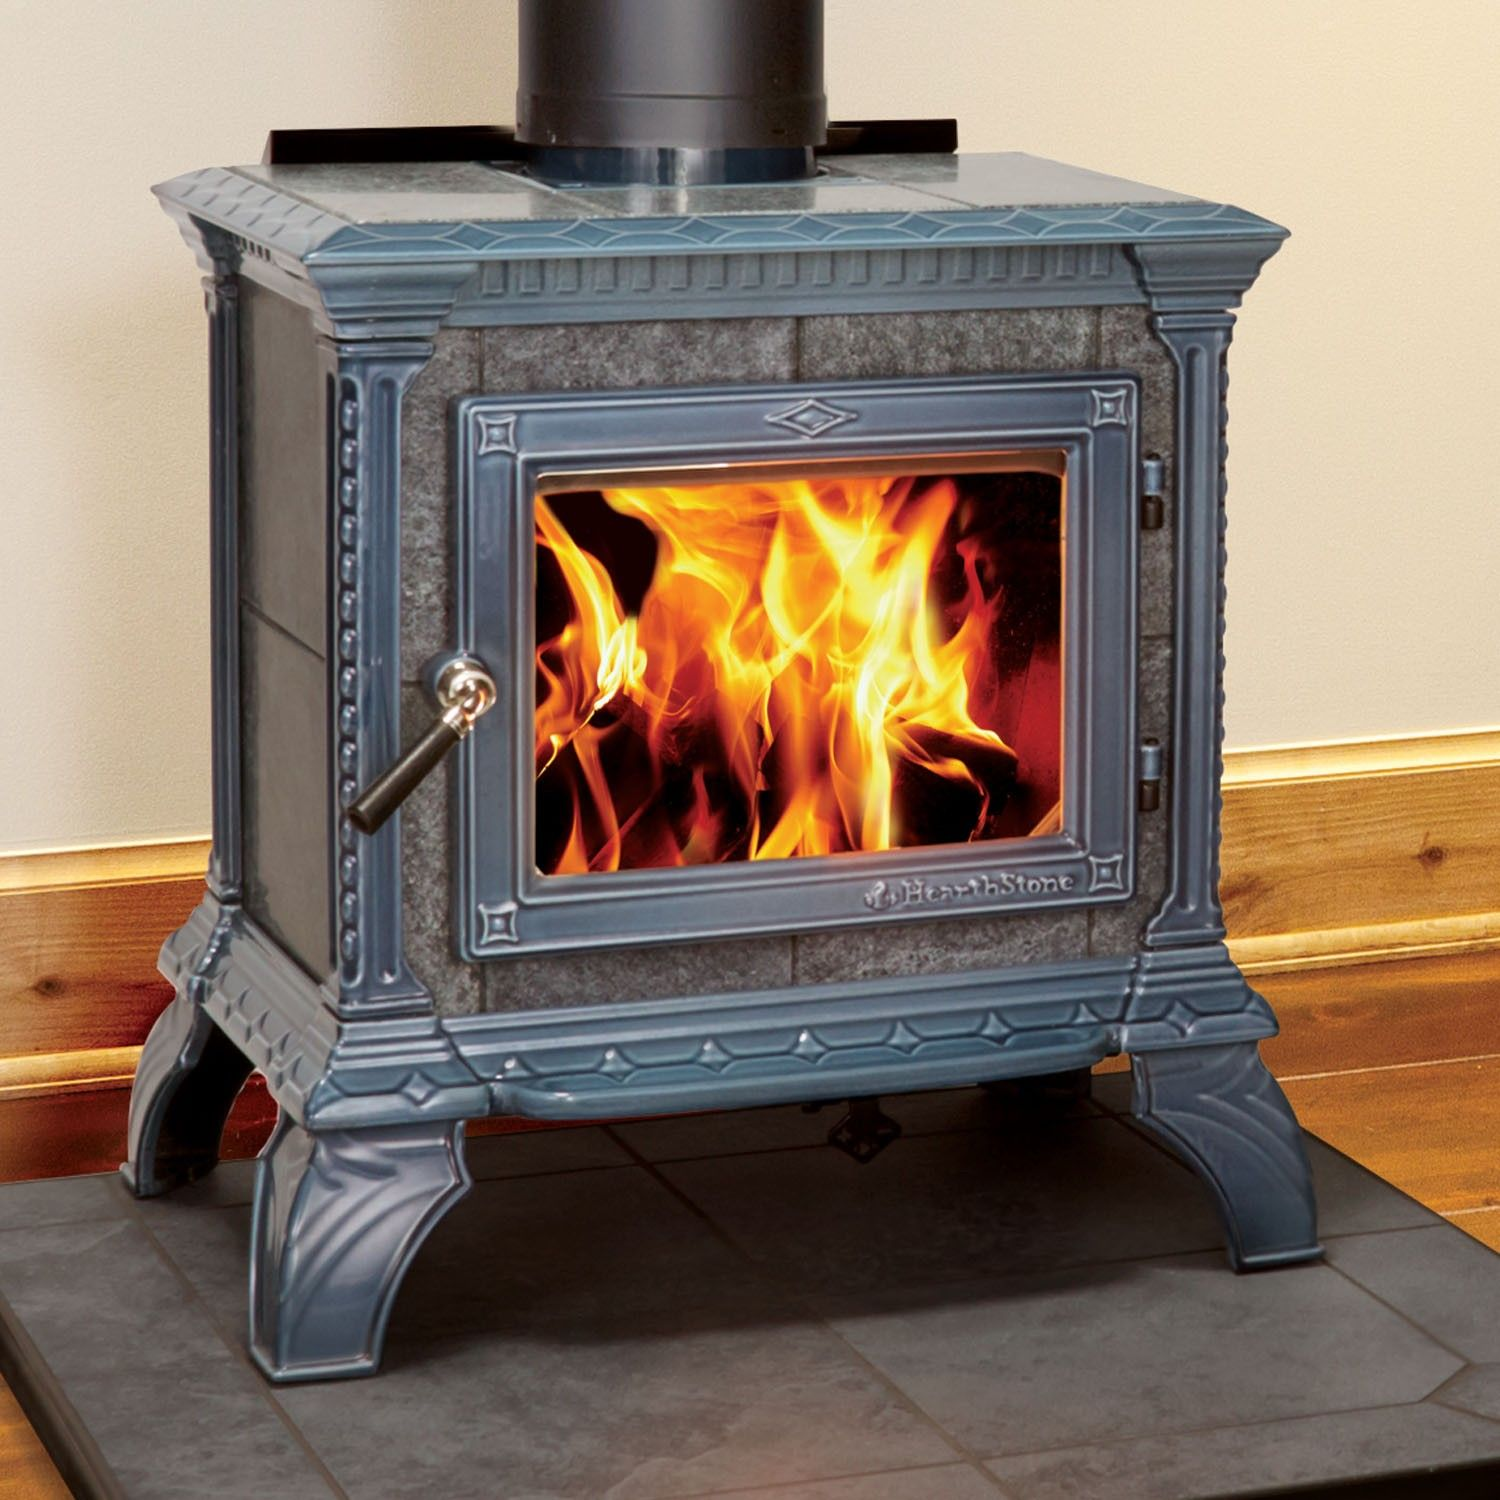 tribute 8040 wood stove with with seafoam majolica enamel finish by